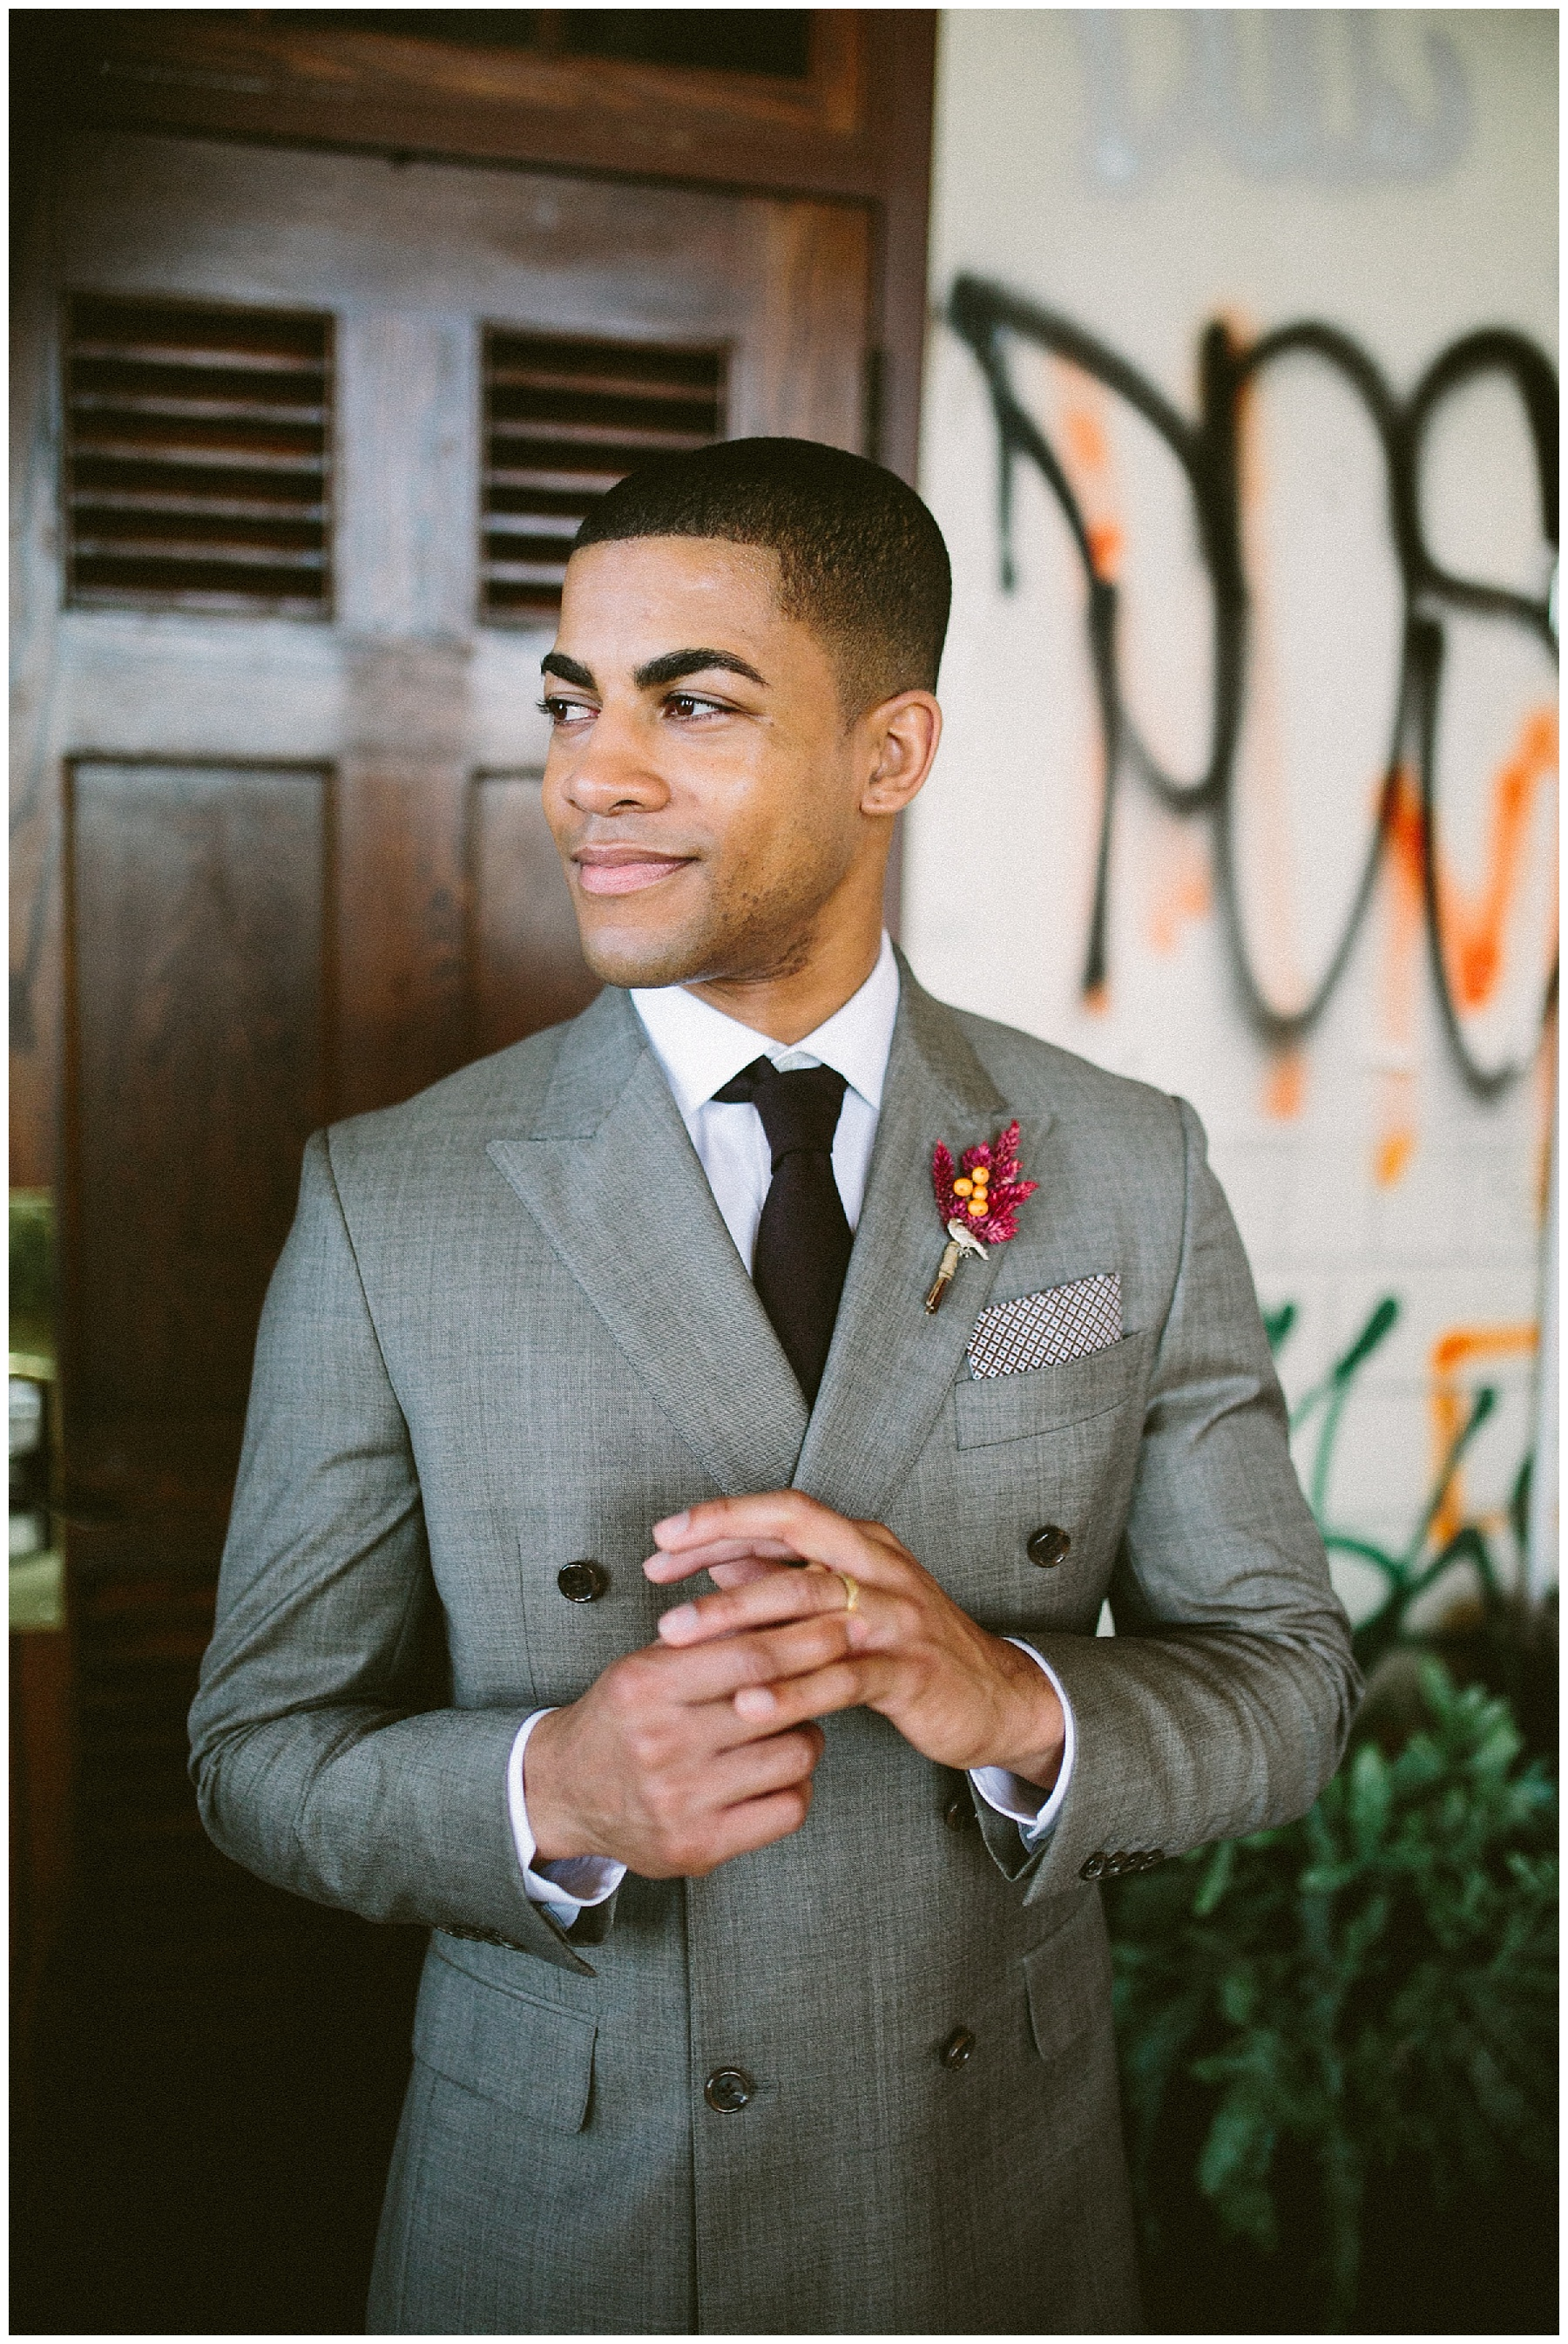 Grey suit and red boutonniere